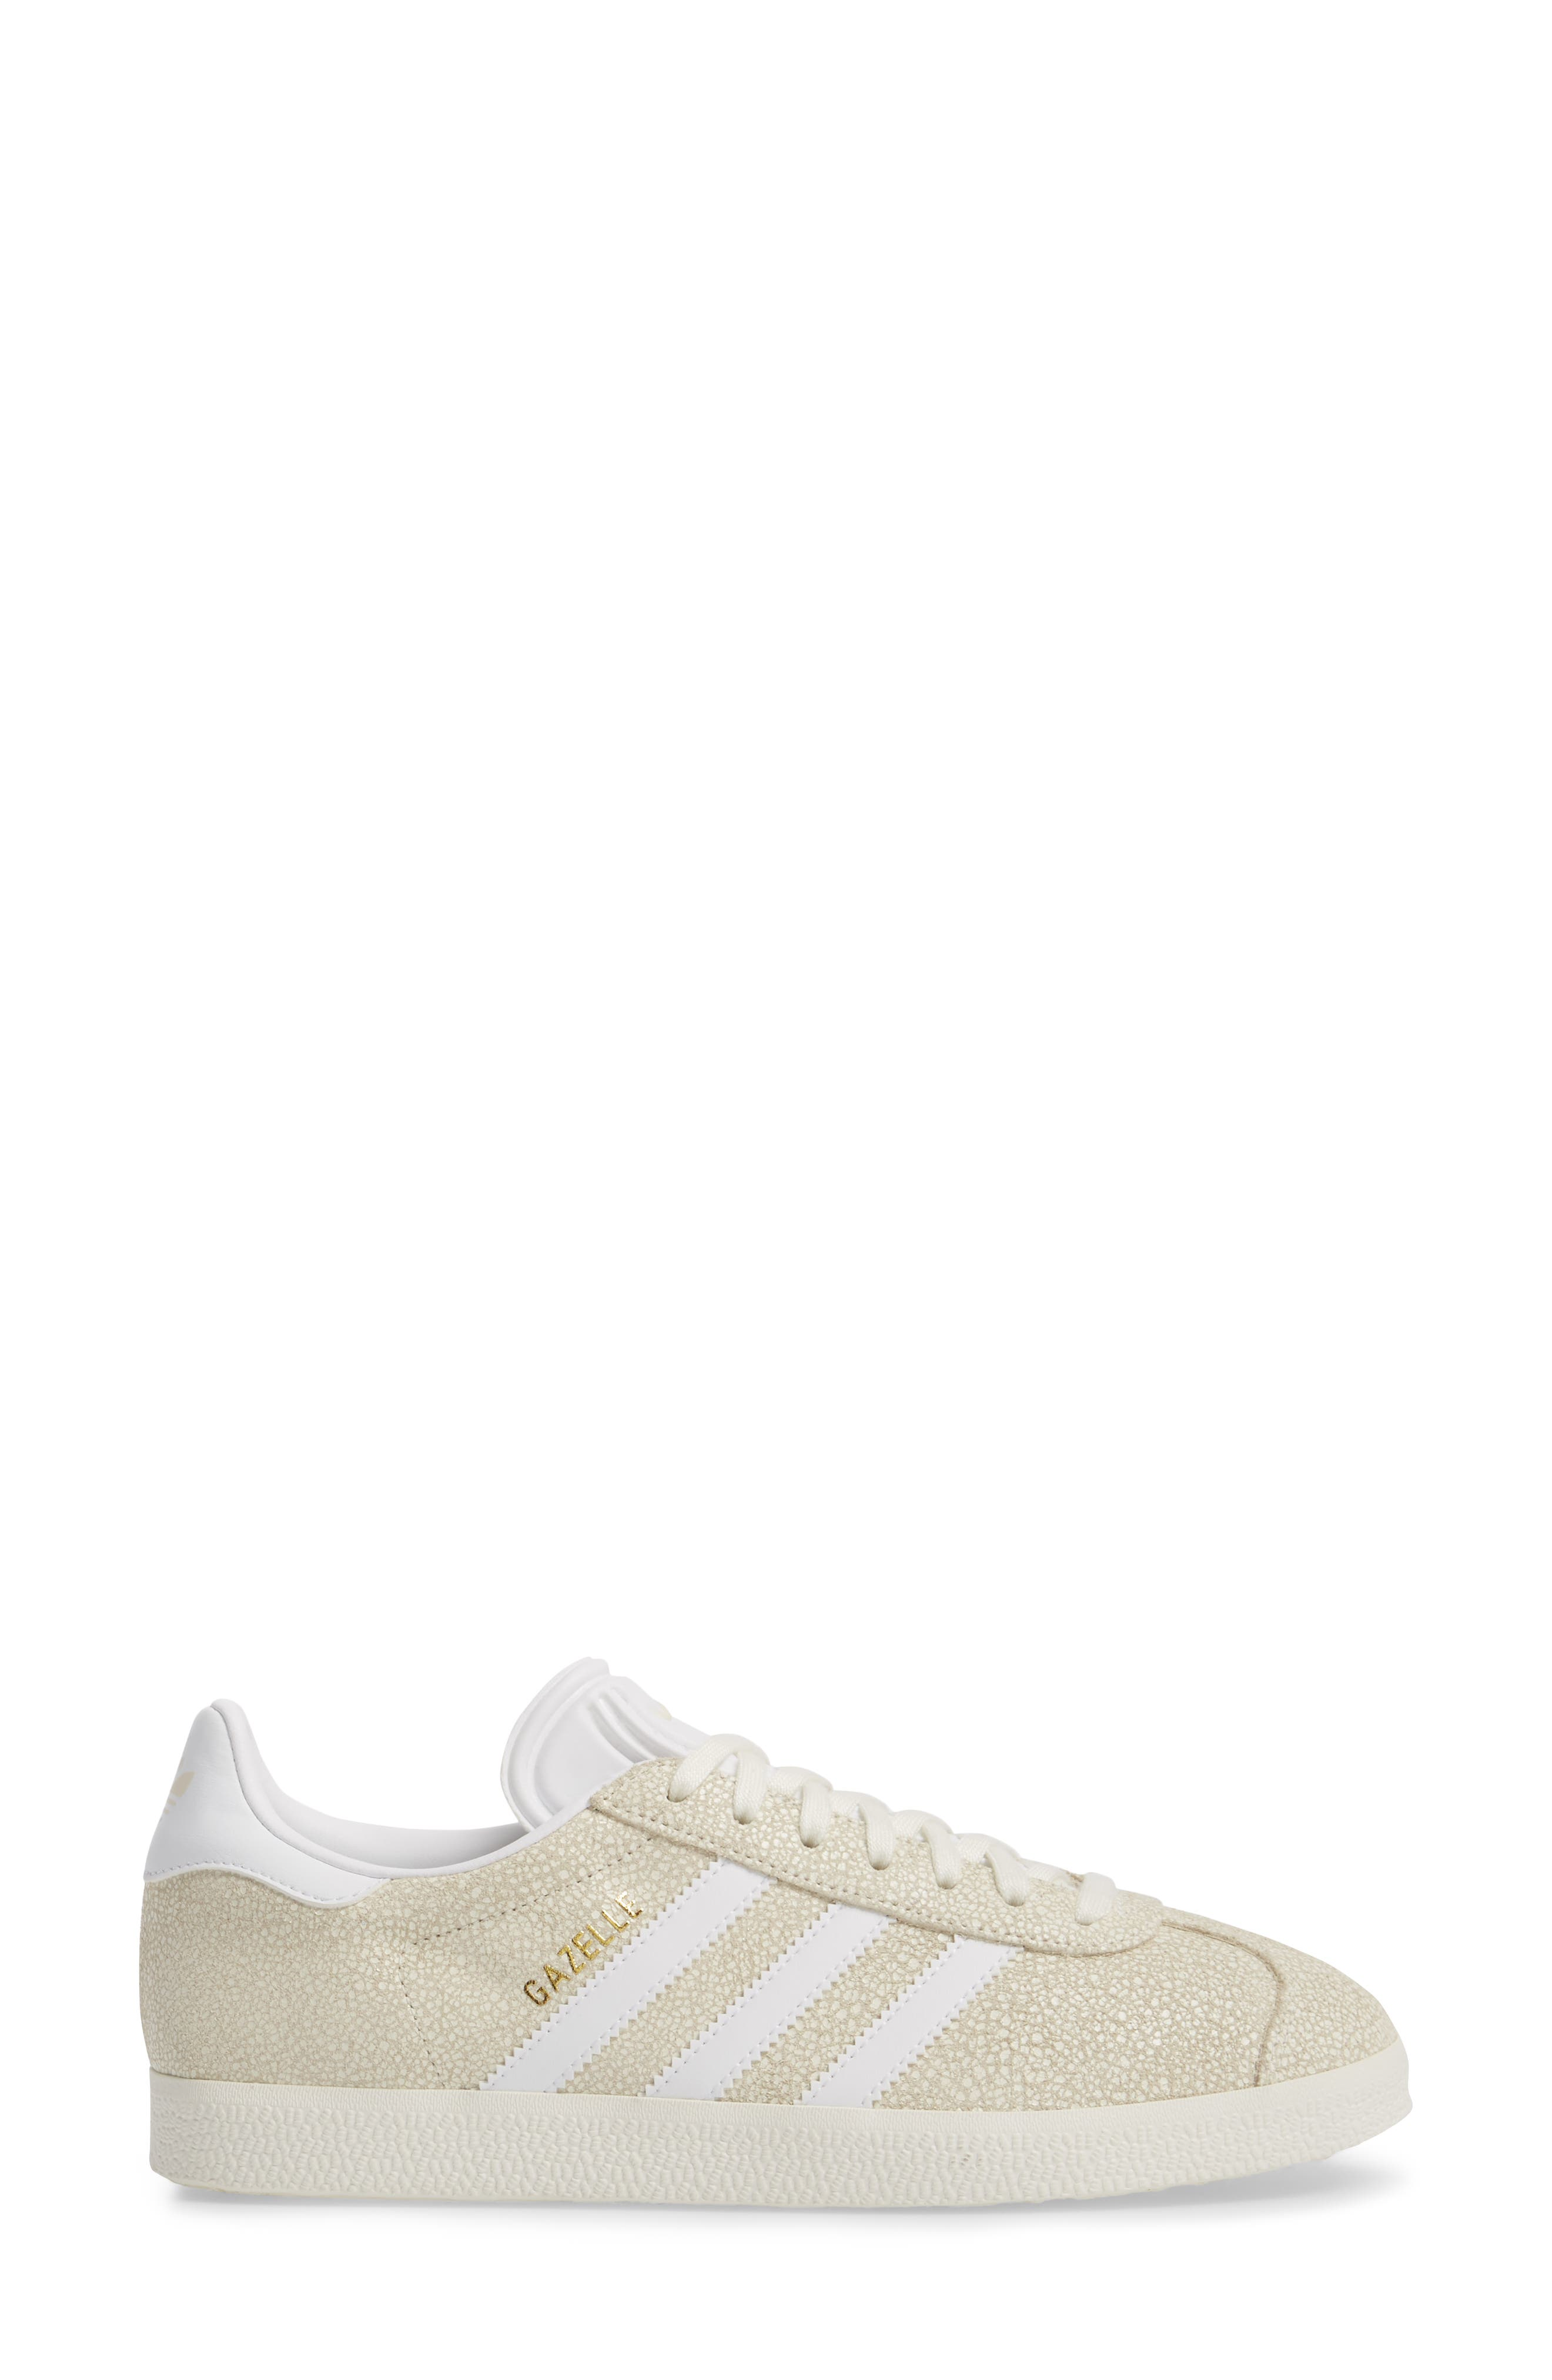 Gazelle Sneaker,                             Alternate thumbnail 7, color,                             Off White/ White/ Off White